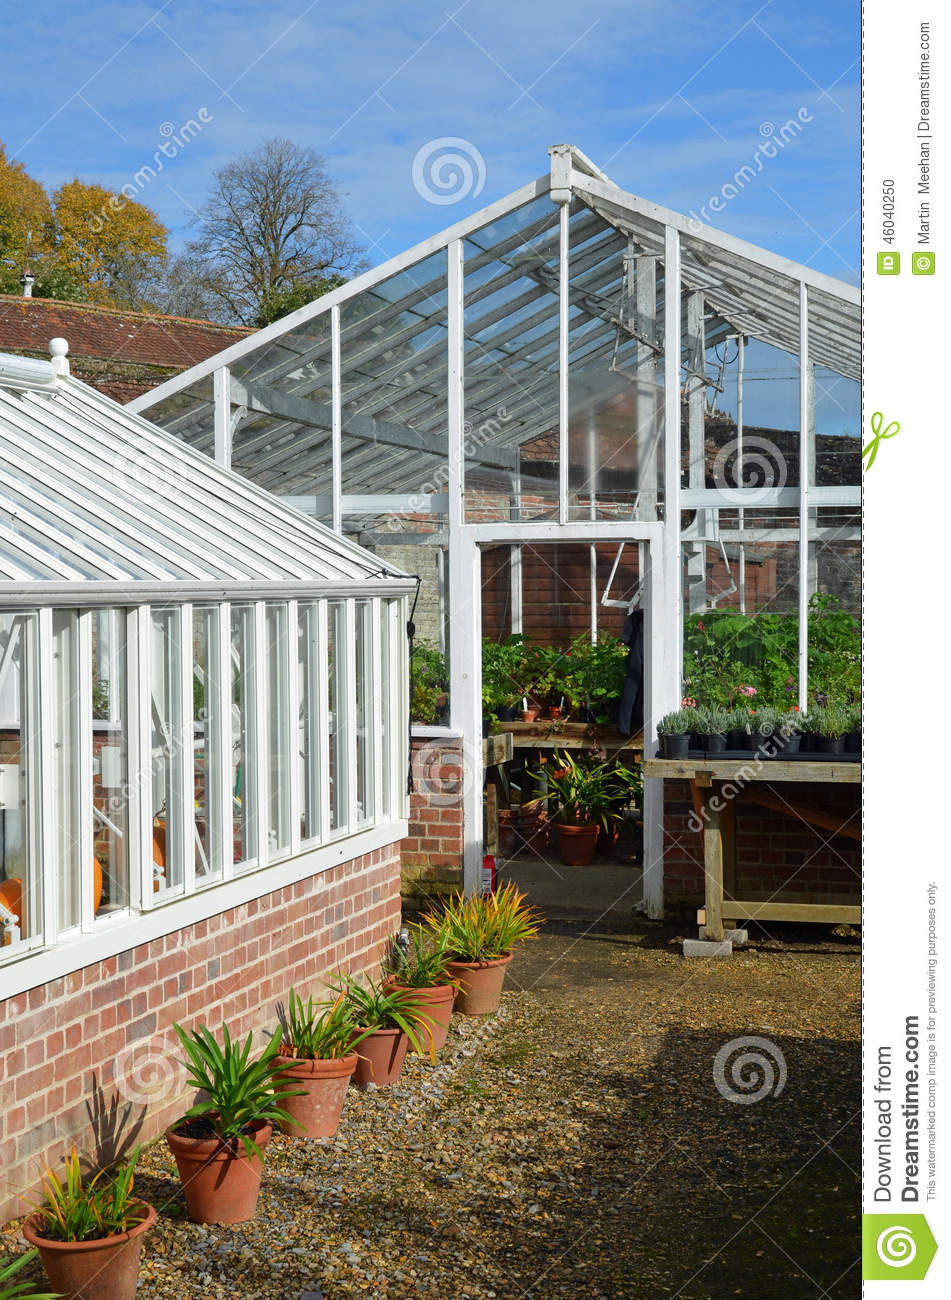 Garden Greenhouse 39 S Stock Photo Image 46040250